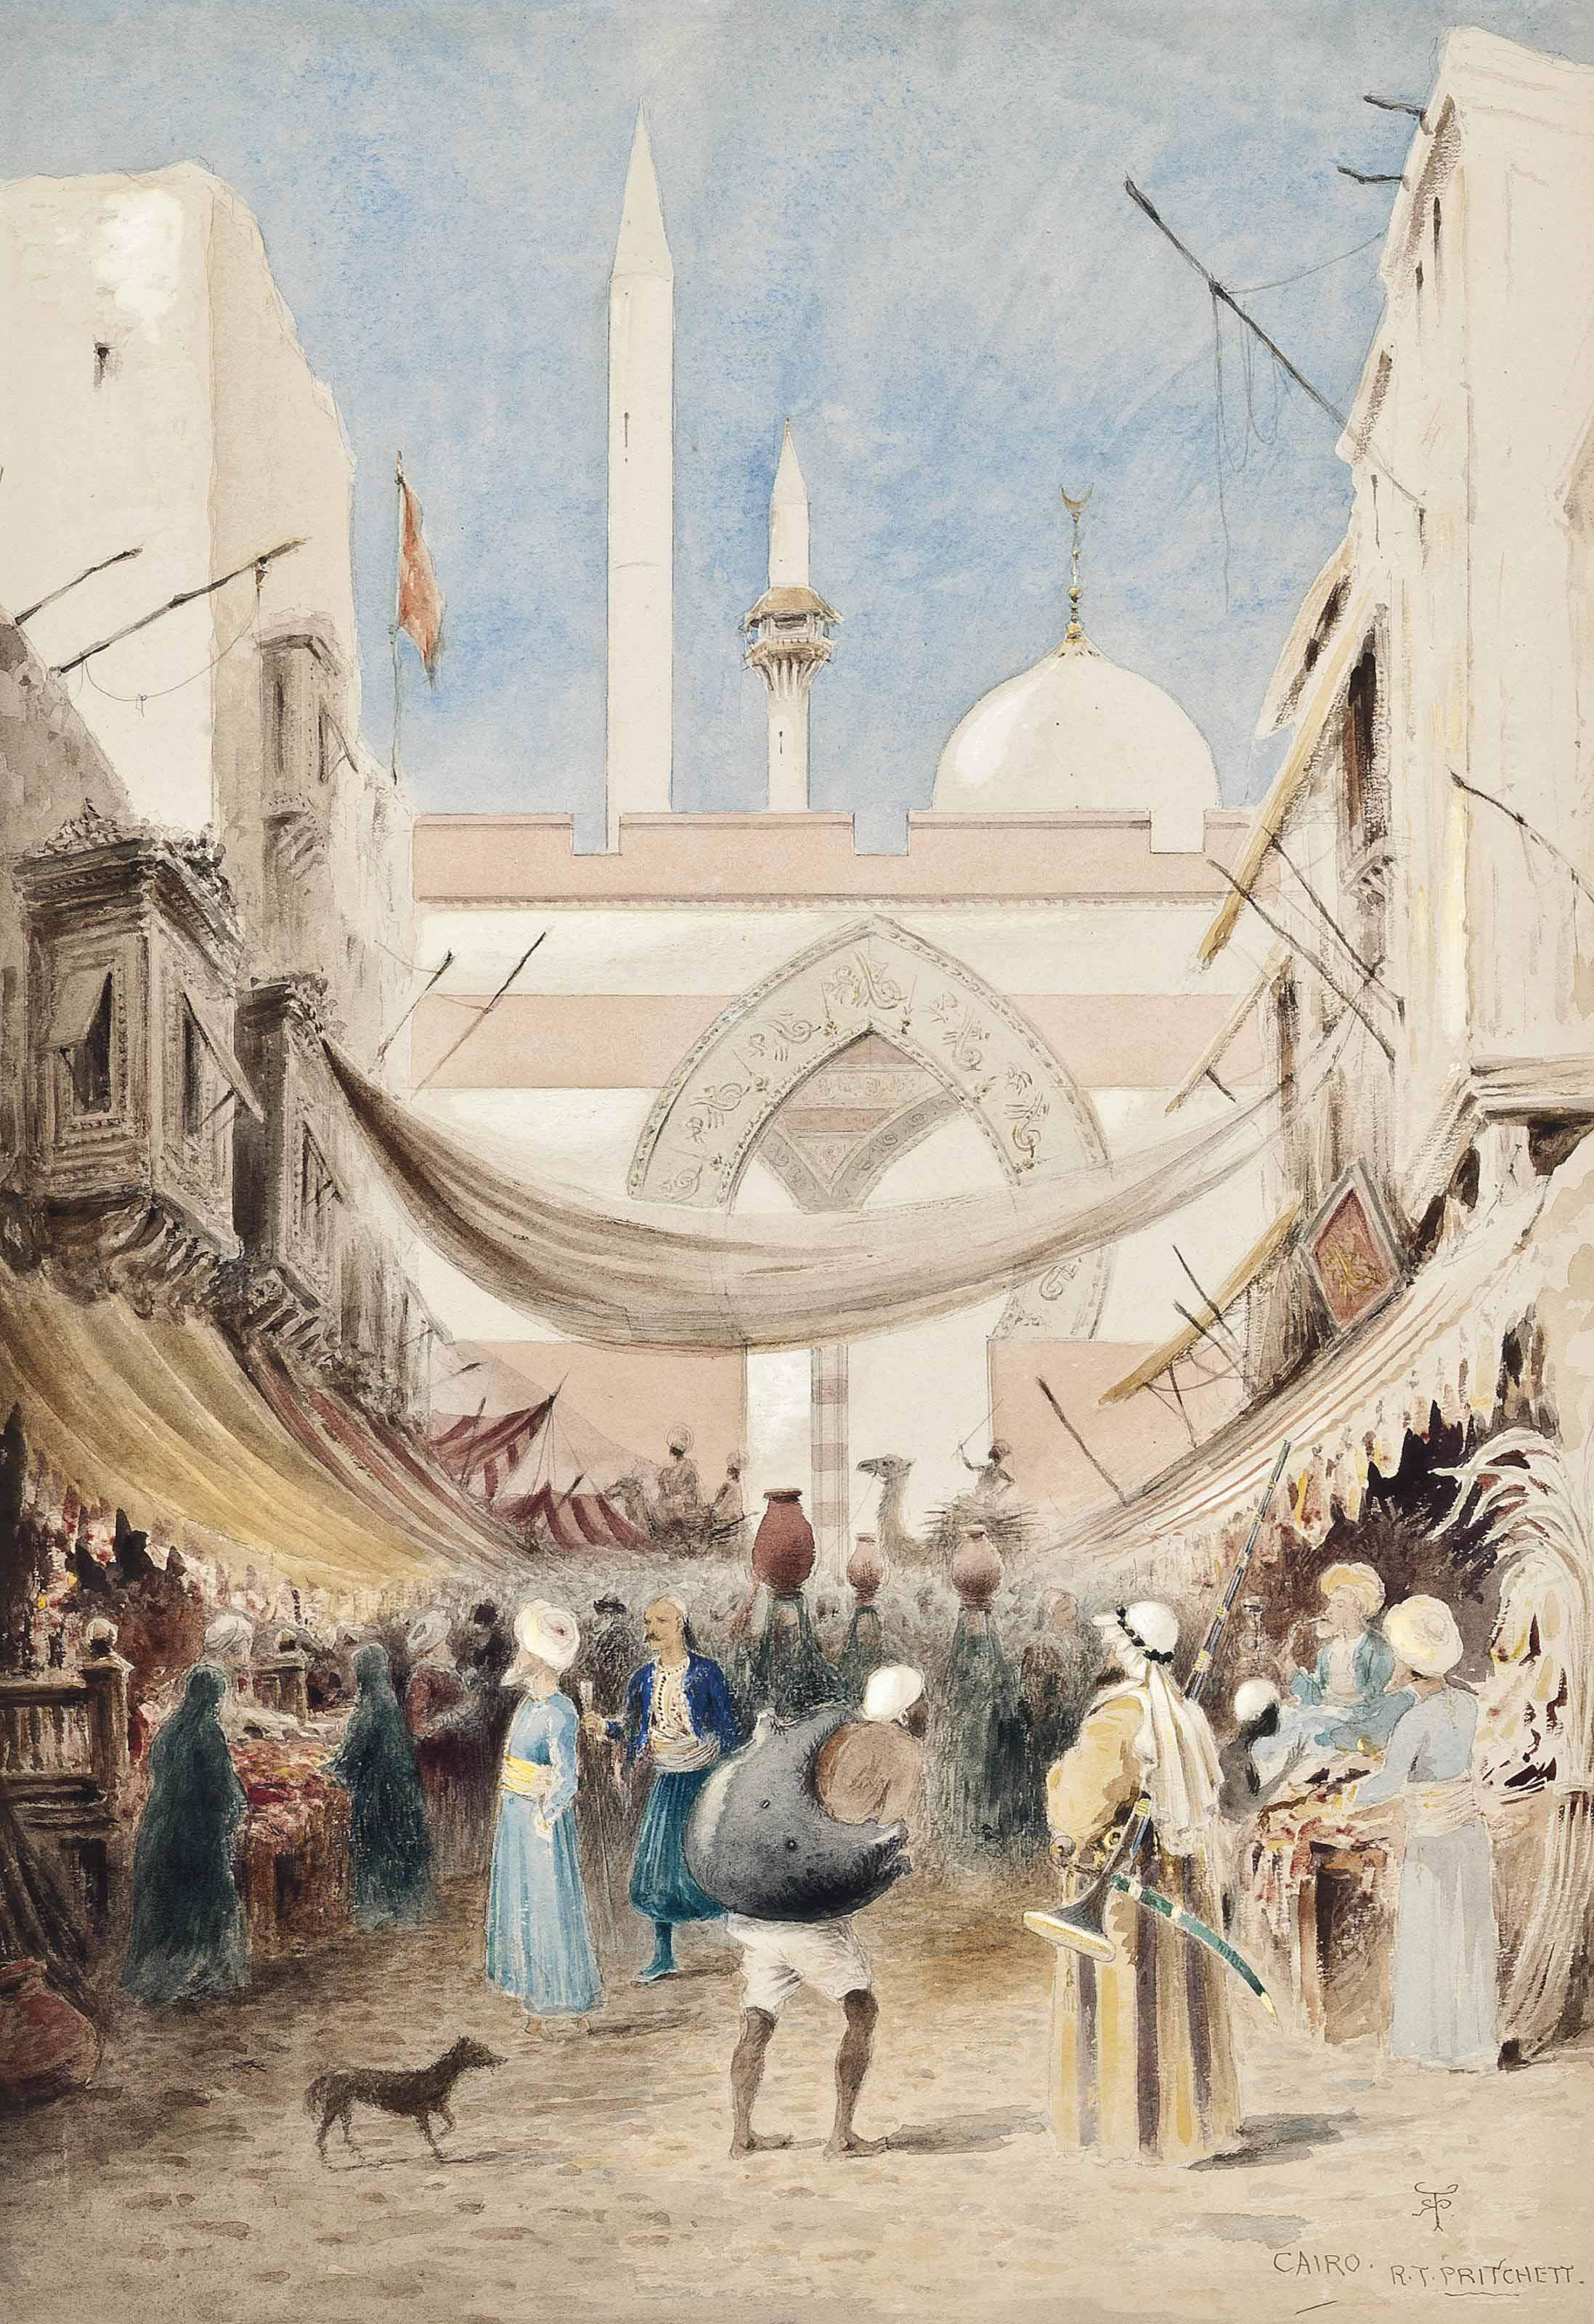 Arabs in the souk, Cairo